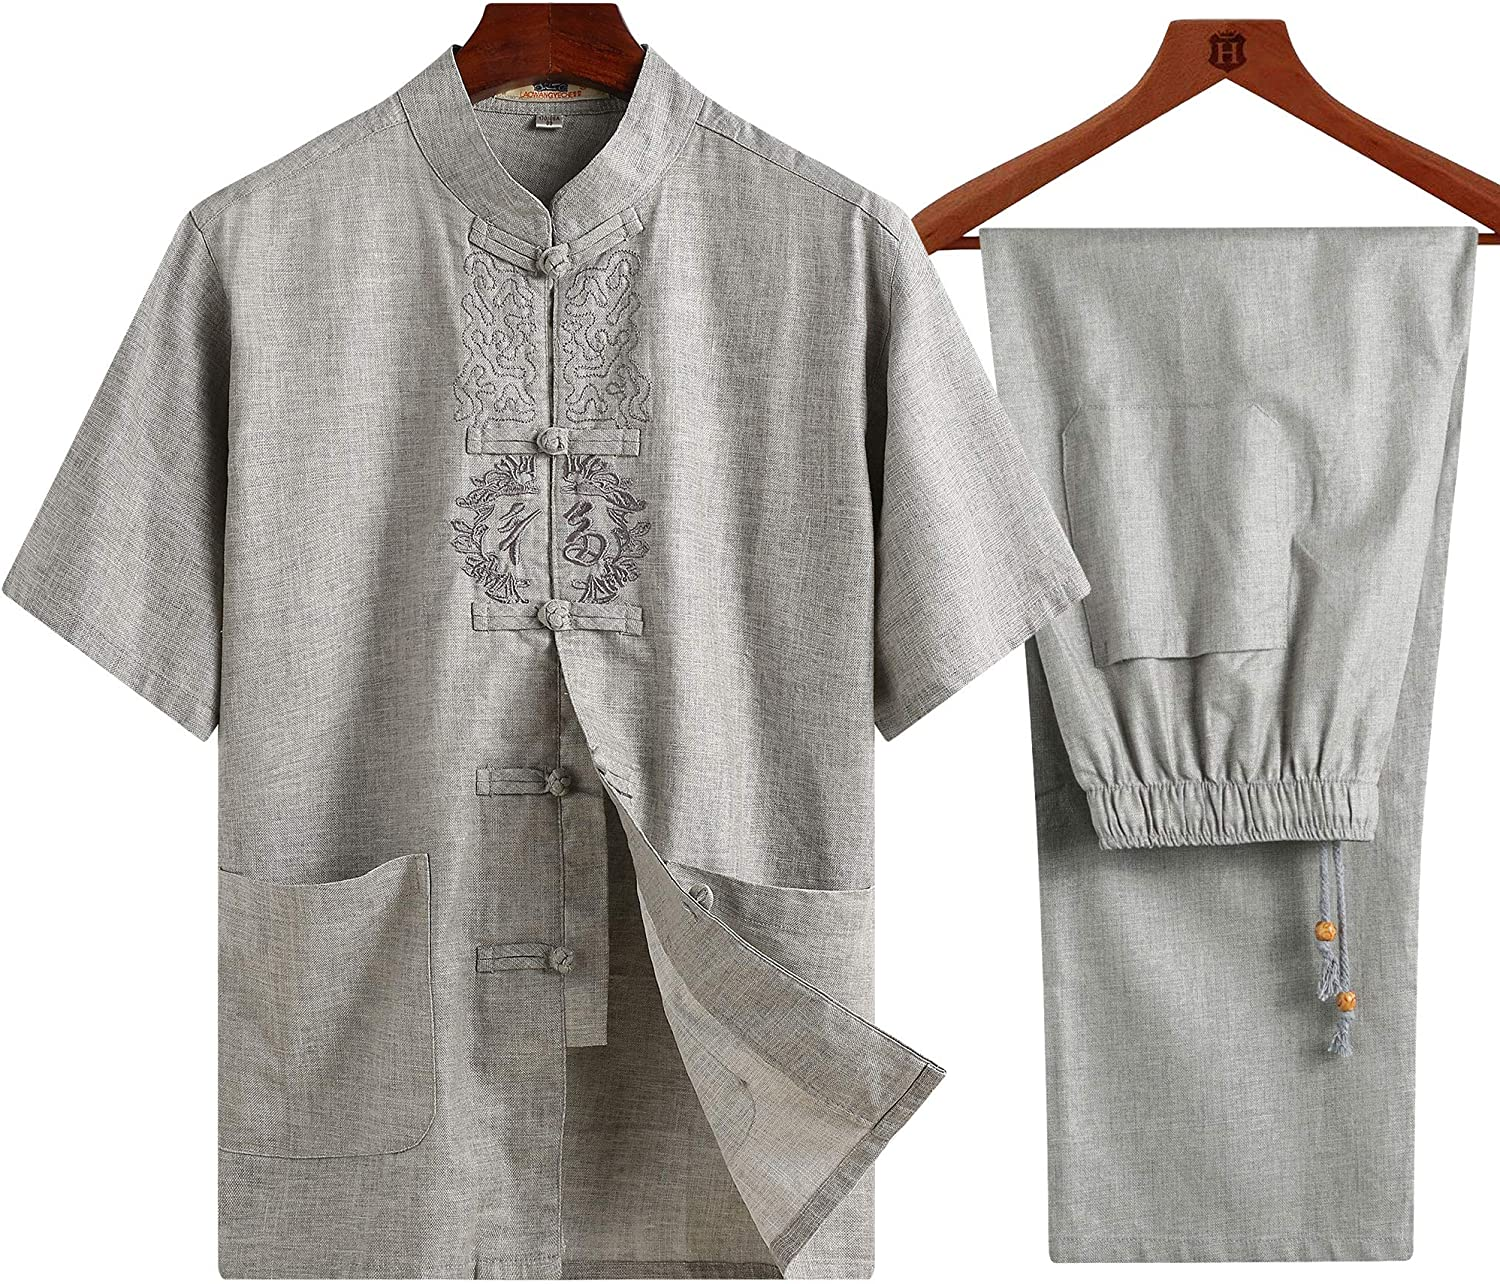 ZooBoo Chinese Clothing Tang Suit - Traditional China Tang Suit Summer Linen Embroidered Short Sleeve Shirt and Pants for Men